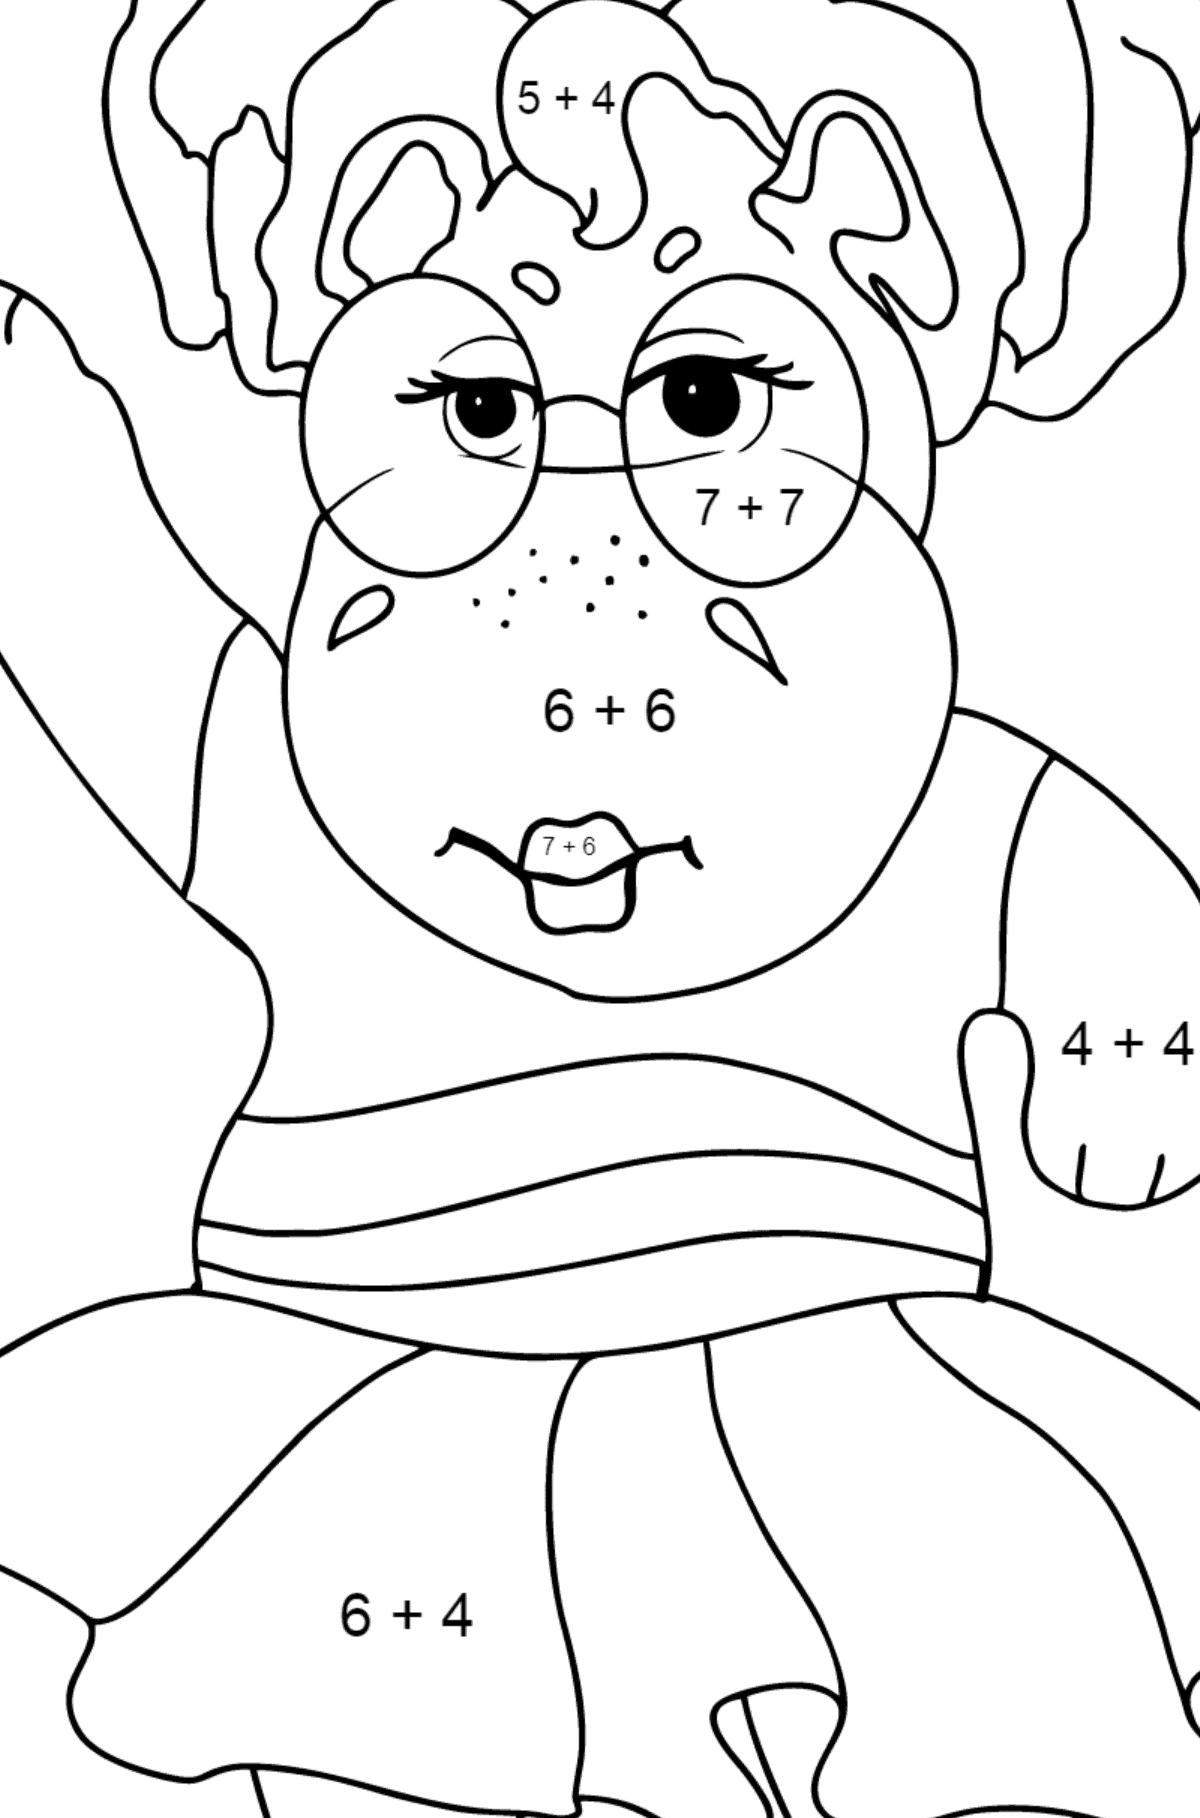 Coloring Page - A Hippo is Dancing in Sunglasses for Kids  - Color by Number Addition